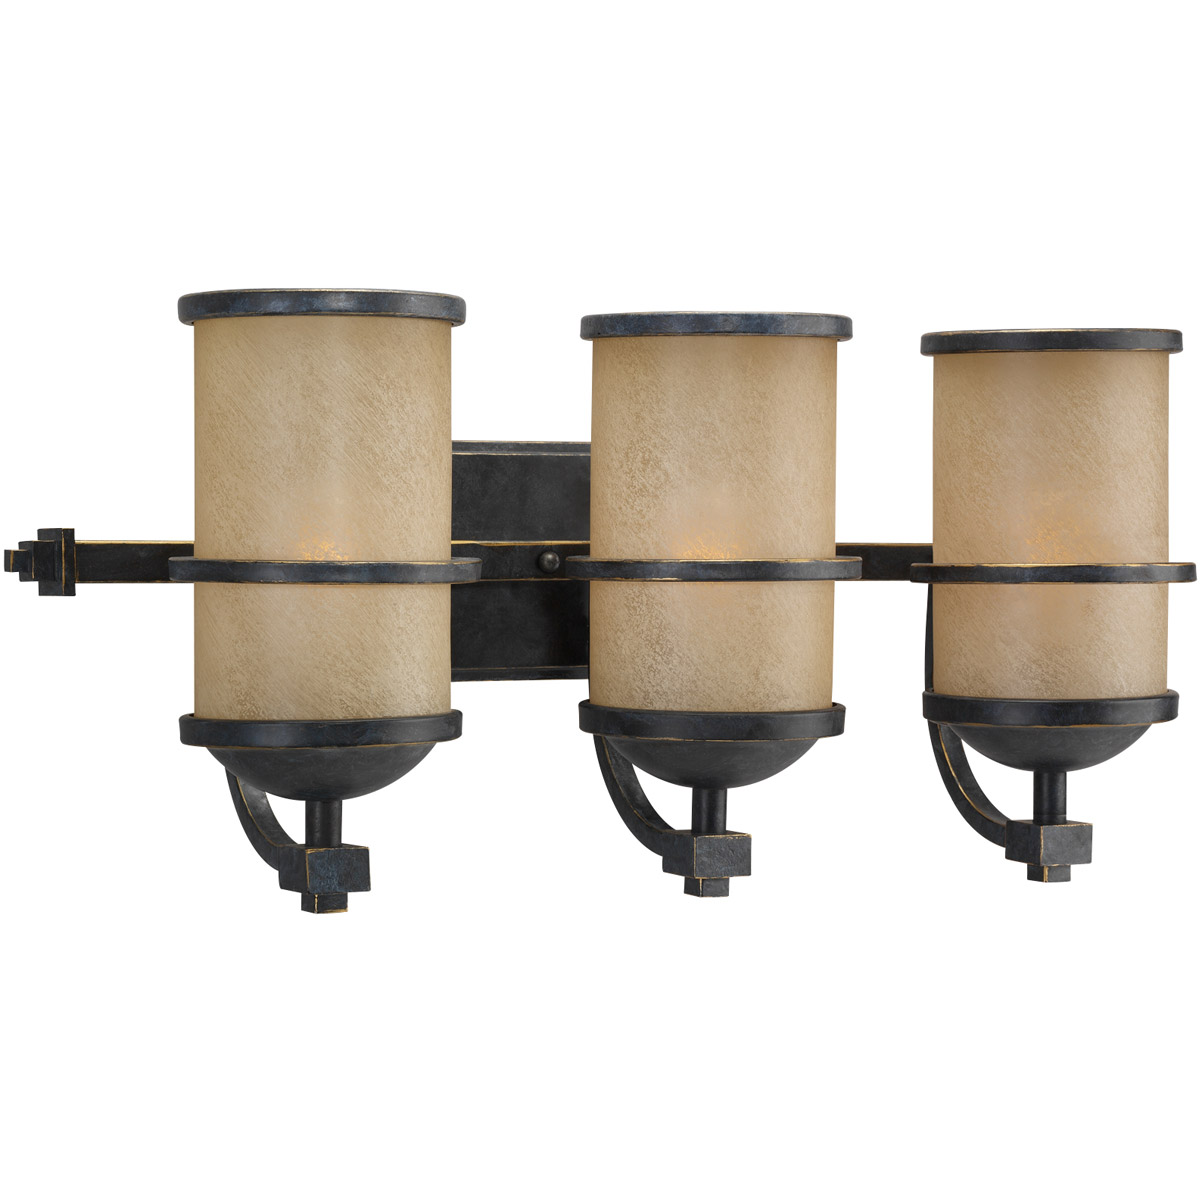 Sea Gull Lighting Roslyn 3 Light Bath Vanity in Flemish Bronze 44522-845